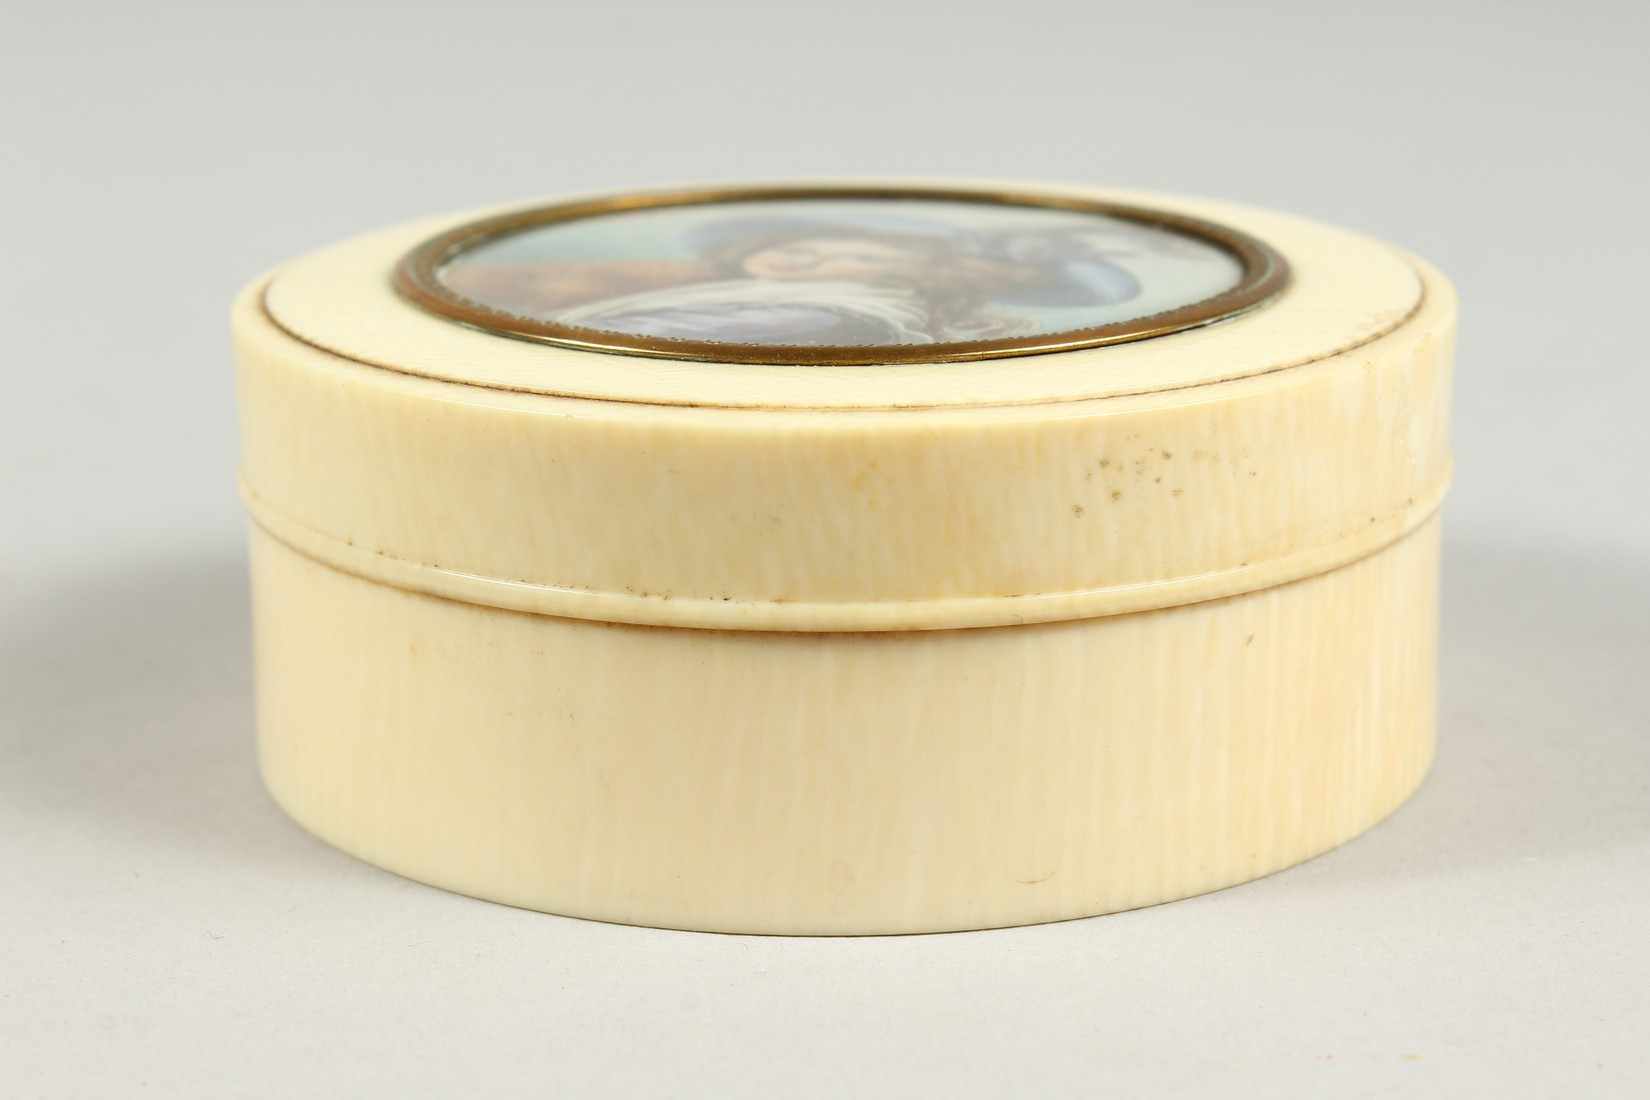 A GEORGIAN IVORY CIRCULAR BOX, the top painted with a portrait of a young lady in a plumed hat. 3ins - Image 4 of 8